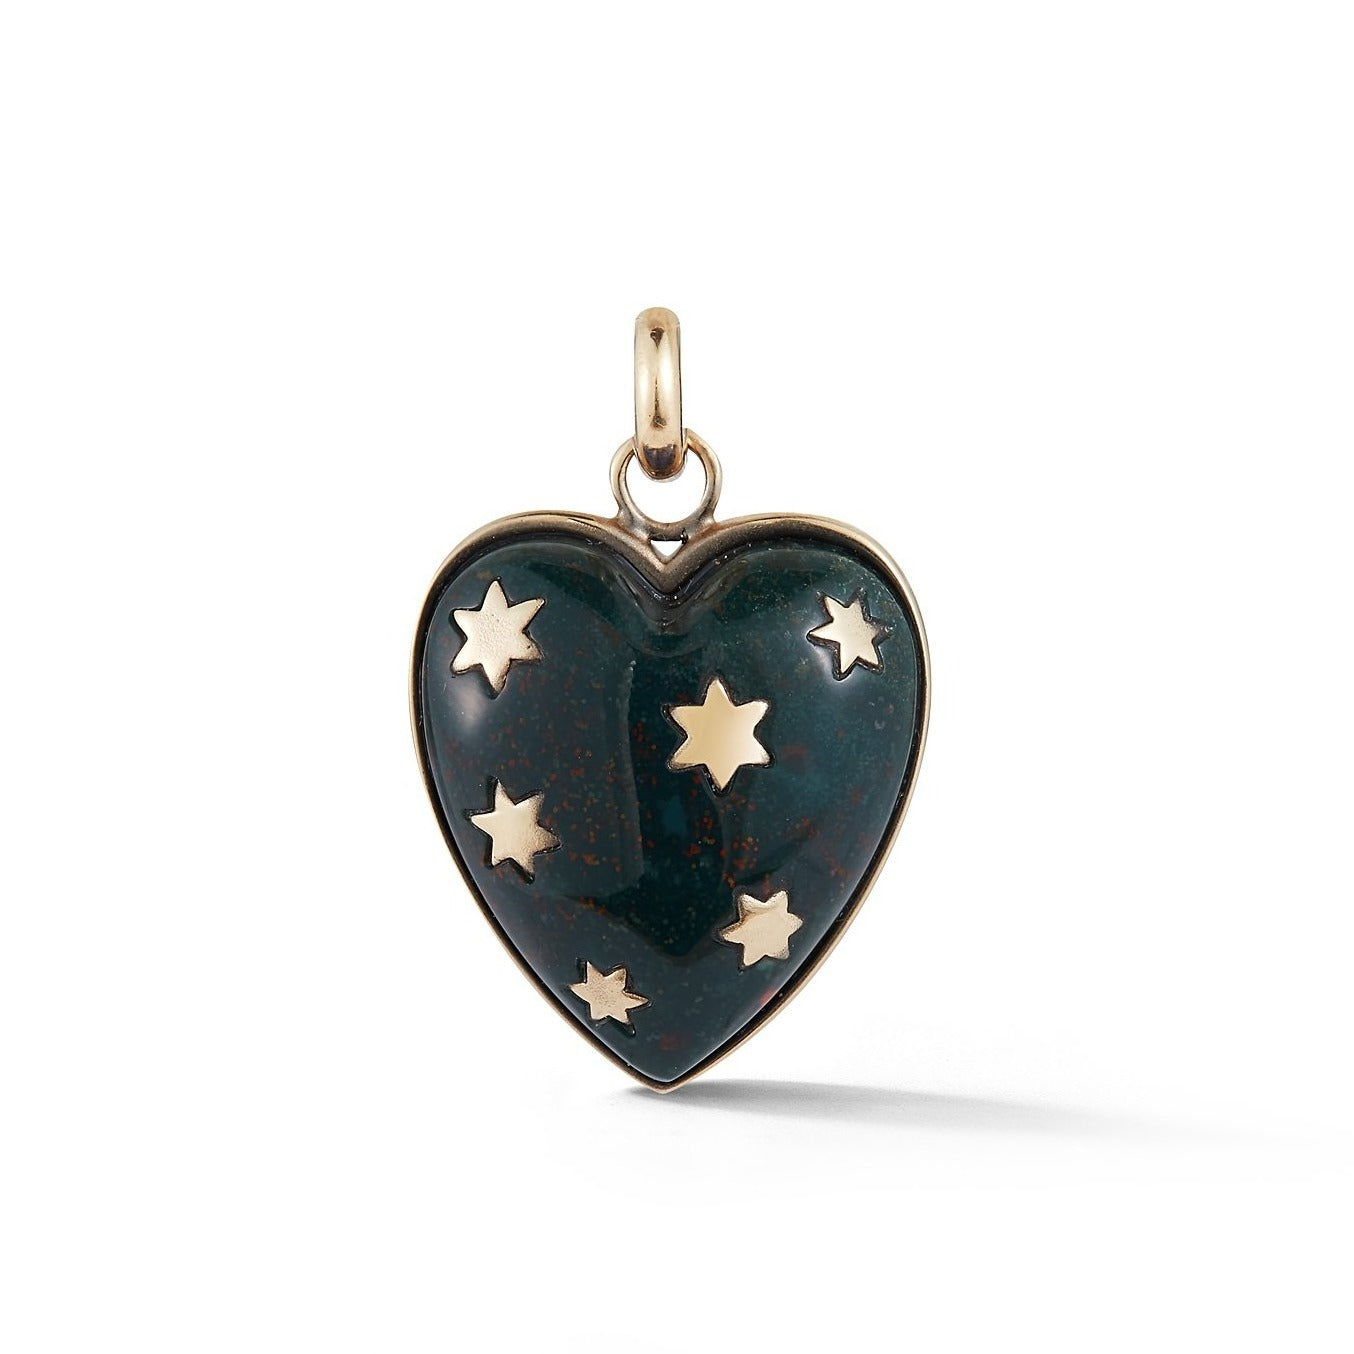 14K Gold & Green Bloodstone Anna Heart Charm